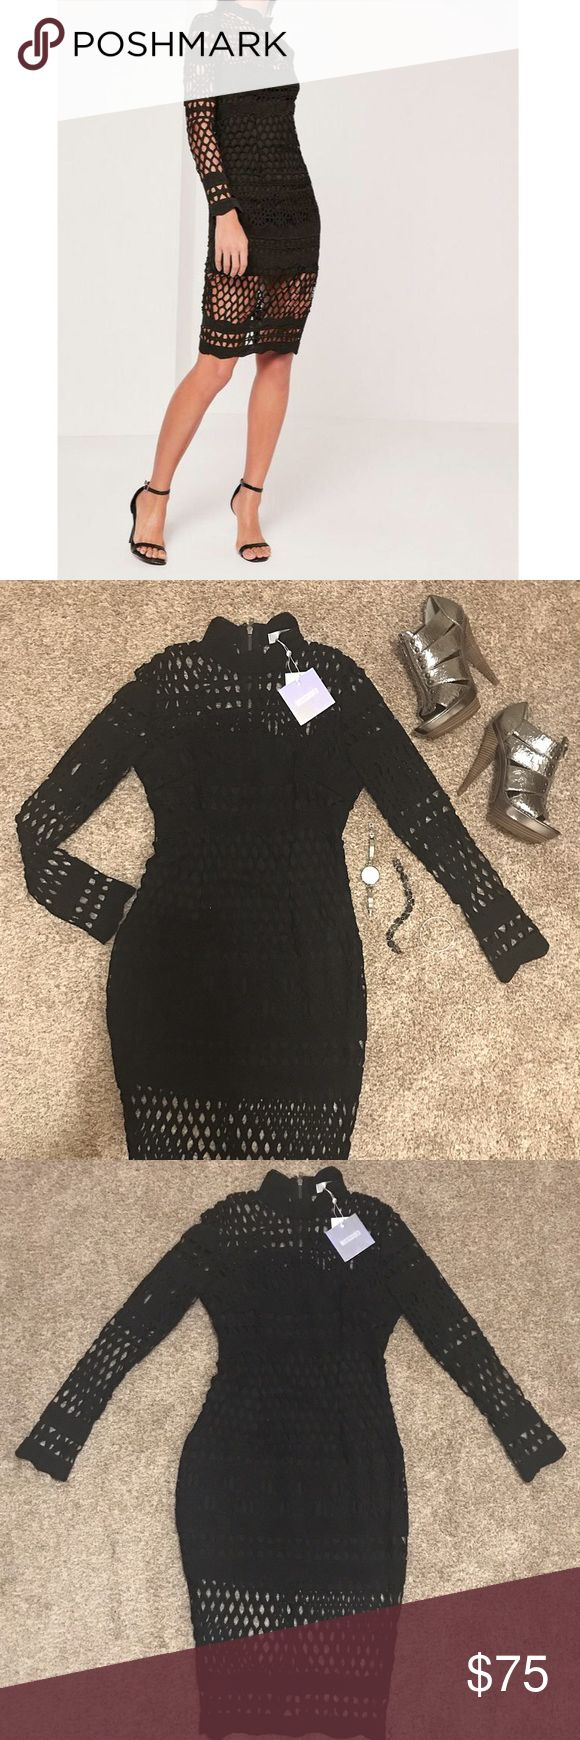 Missguided NWT Fishnet Midi Dress Brand new with tags! Beautiful and intricate lace fishnet pattern all over. Dress is lined to the upper thigh, with slit in back. Long sleeves with choker-like neckline. Good quality zipper in back. US 4 UK 8. Missguided Dresses Midi